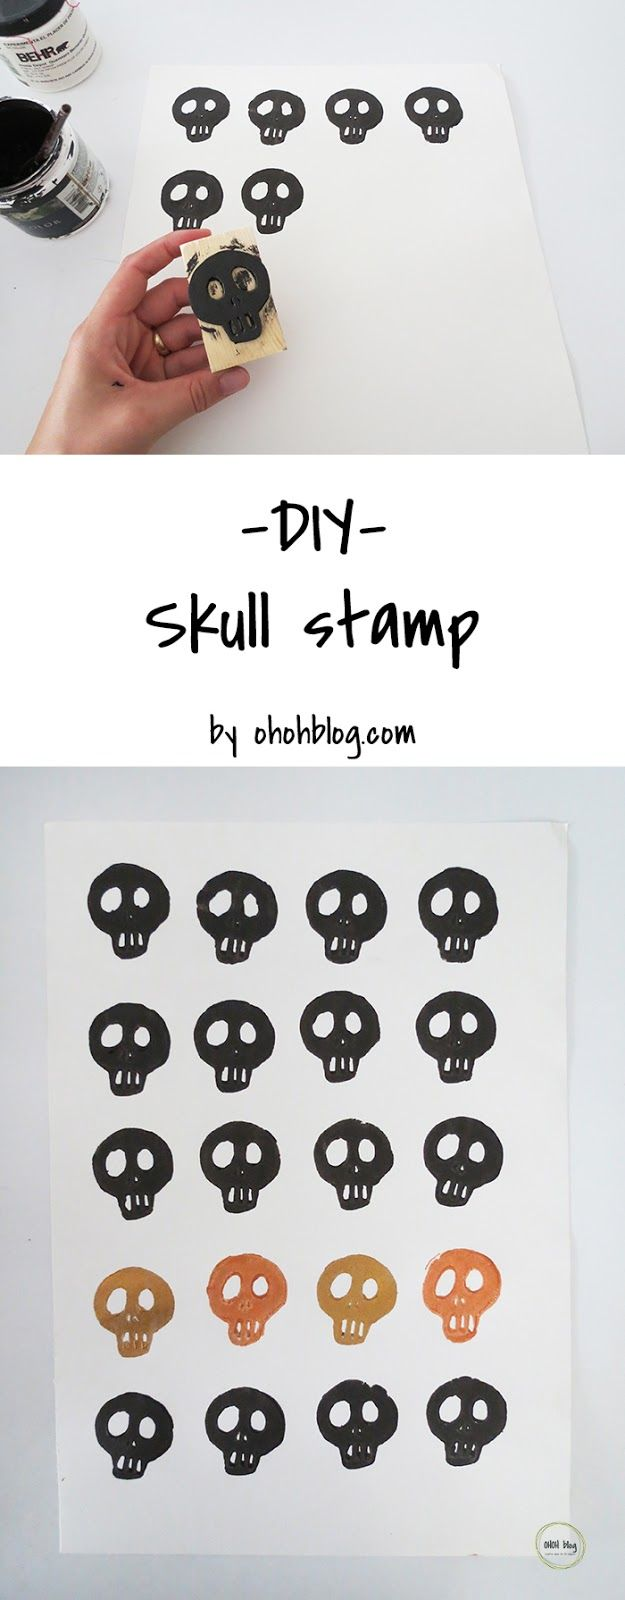 A life true: stamps are one of the coolest things in the world! I should stamp more, it makes me happy! It's kind of silly, let's just s...